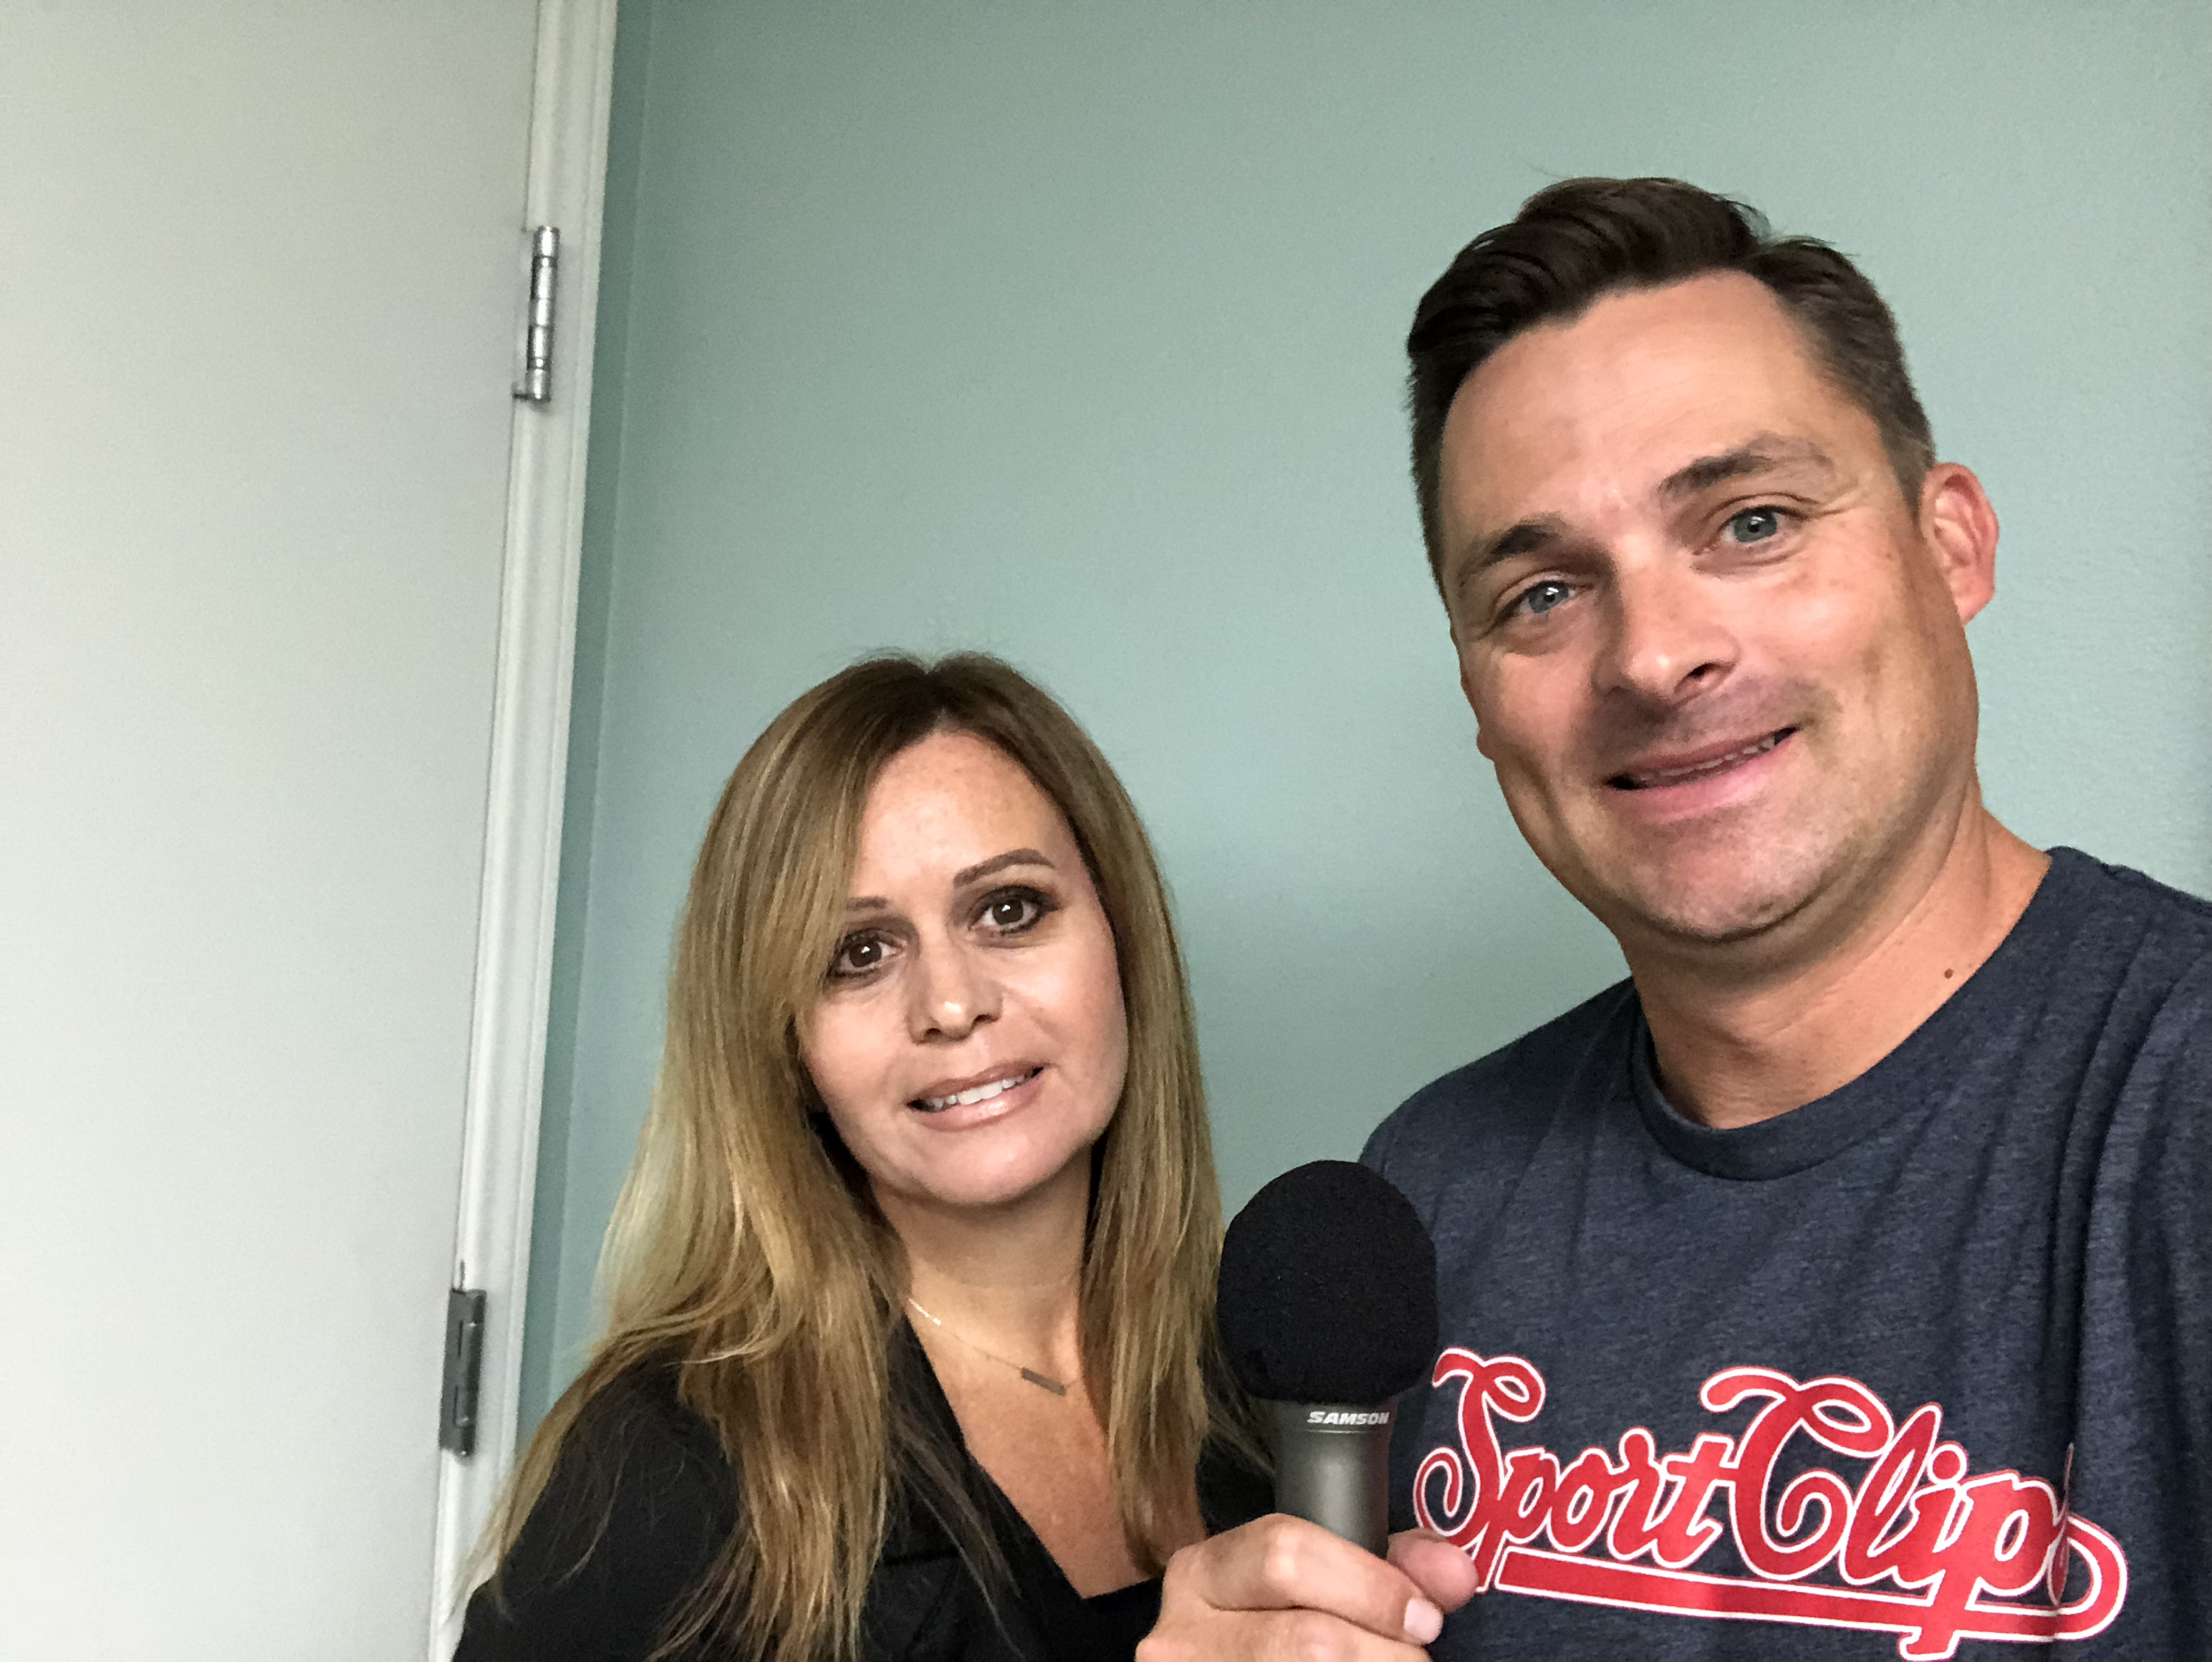 Jennifer Justis and Chad Jordan holding a microphone